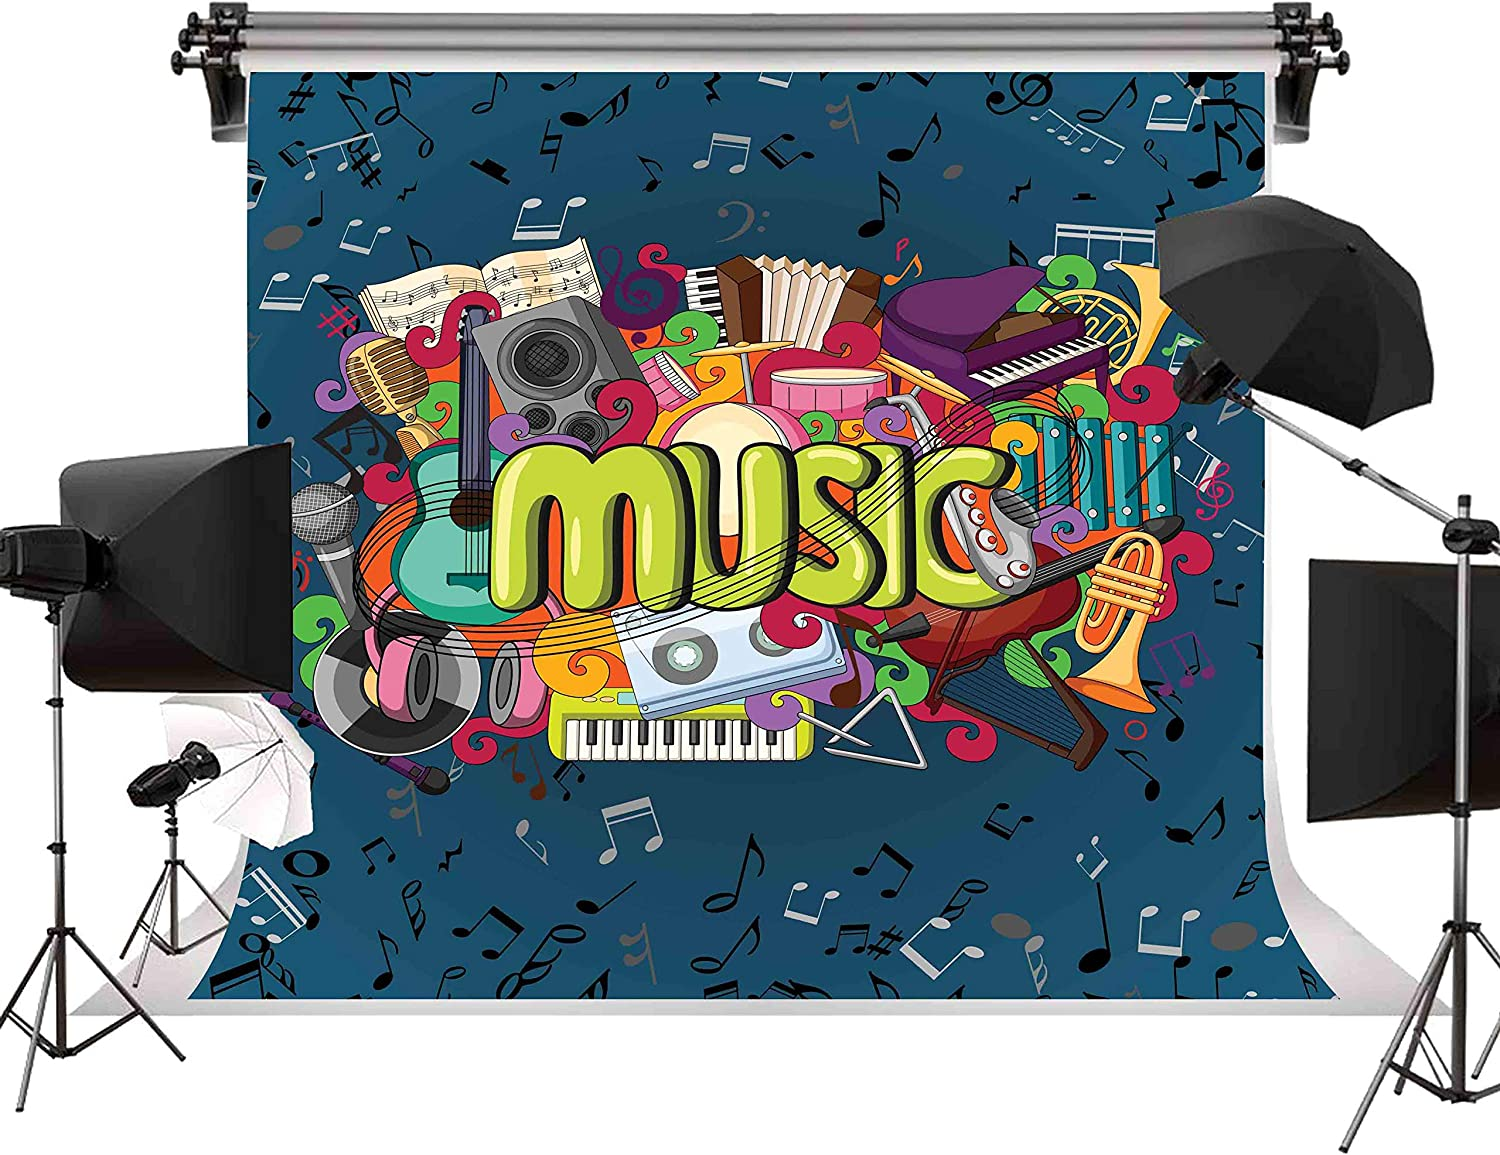 FLASIY 10x10ft Music Photography Backdrops Music Instrument Background Video Studio Photo Shooting Props LYAY232